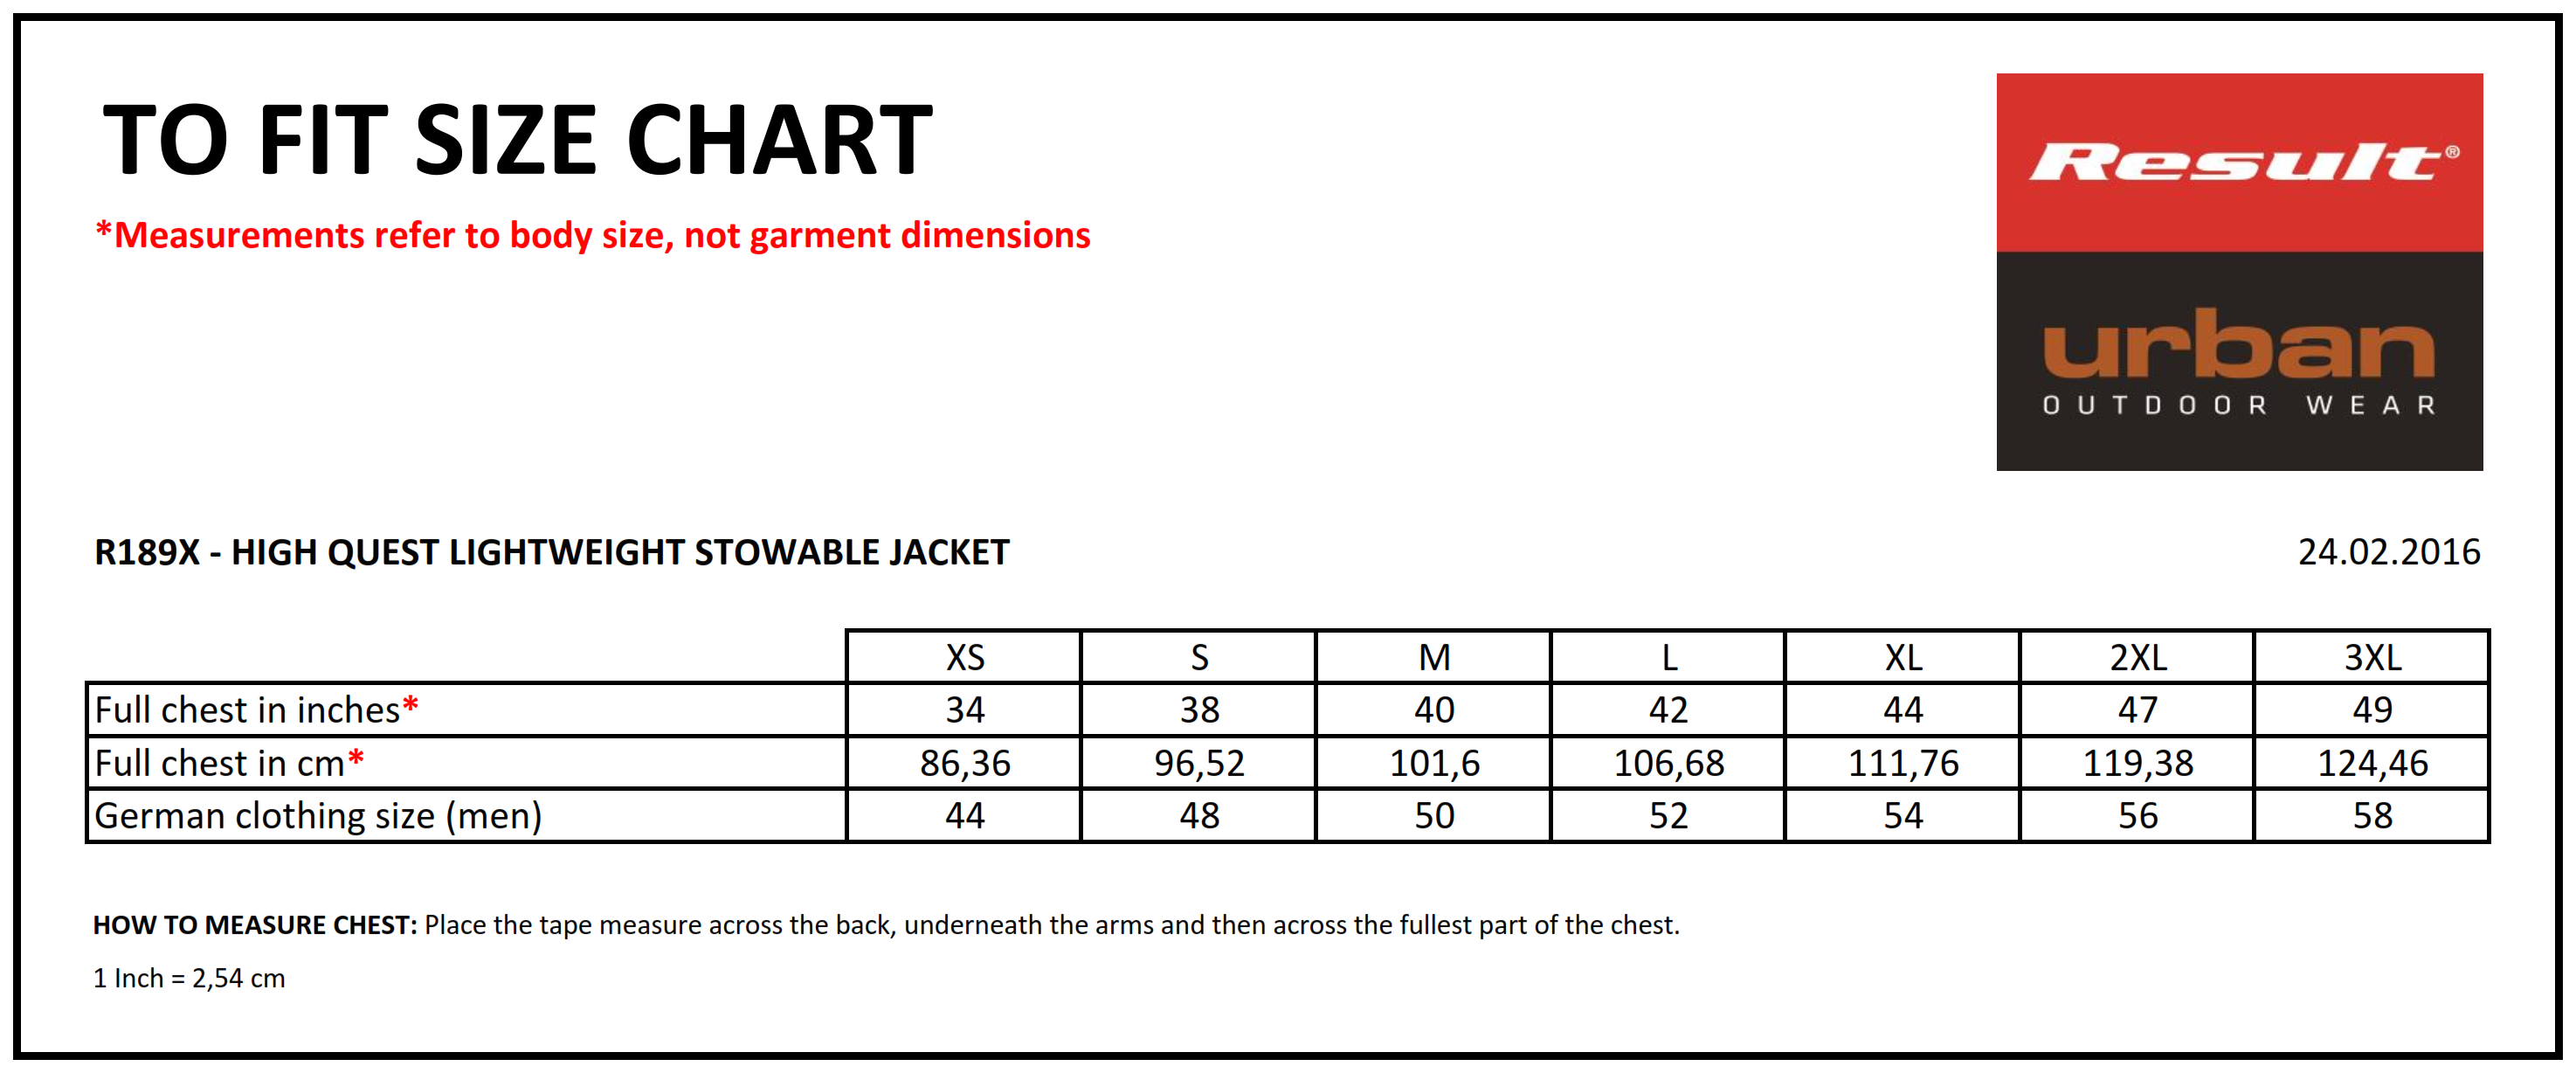 Result: Hdi Quest Lightweight Stowable Jacket R189X